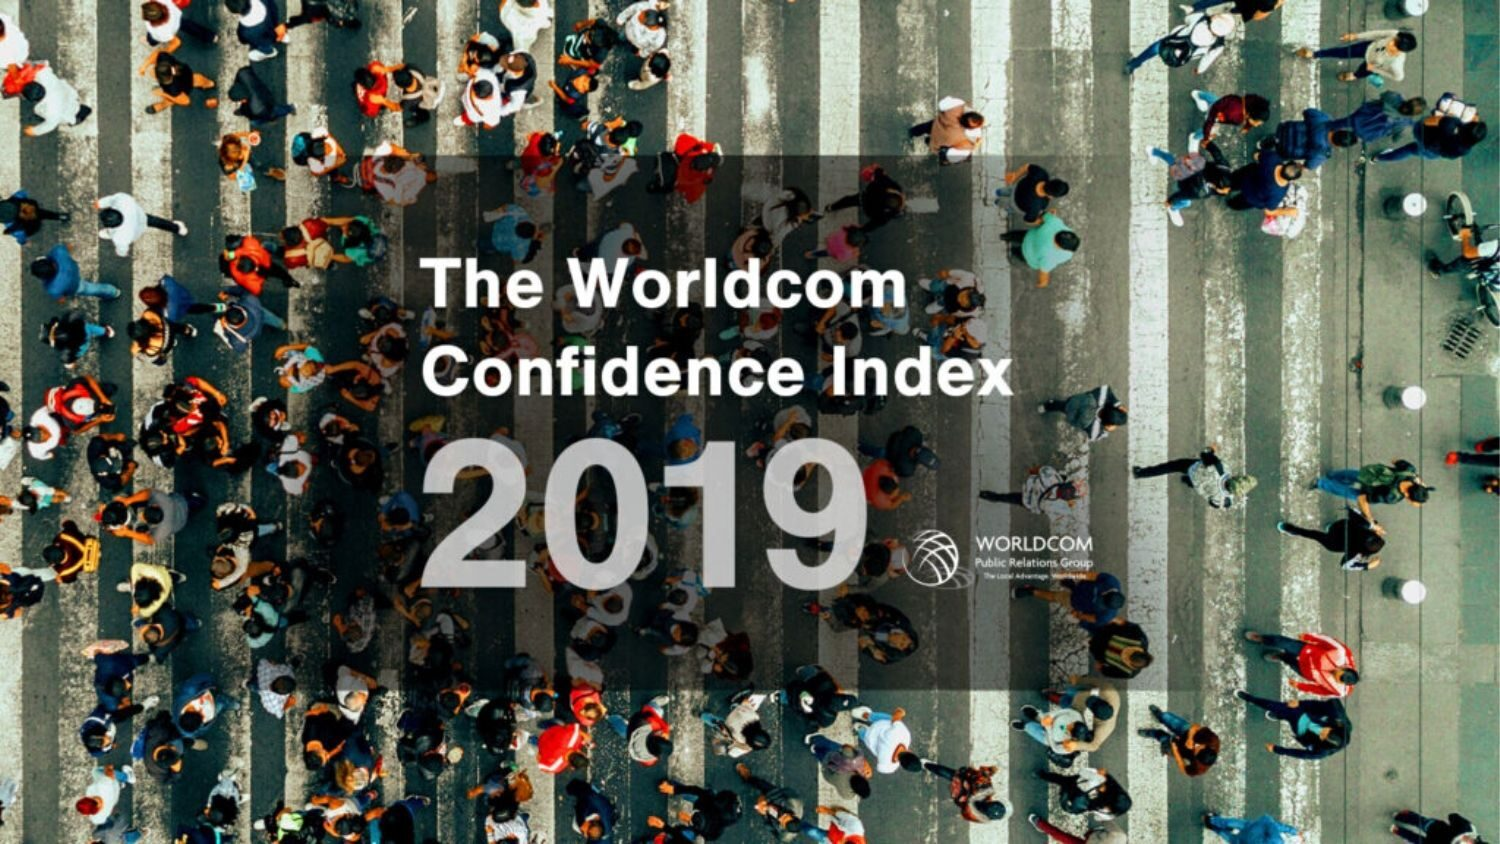 Worldcom Confidence Index Report 2019